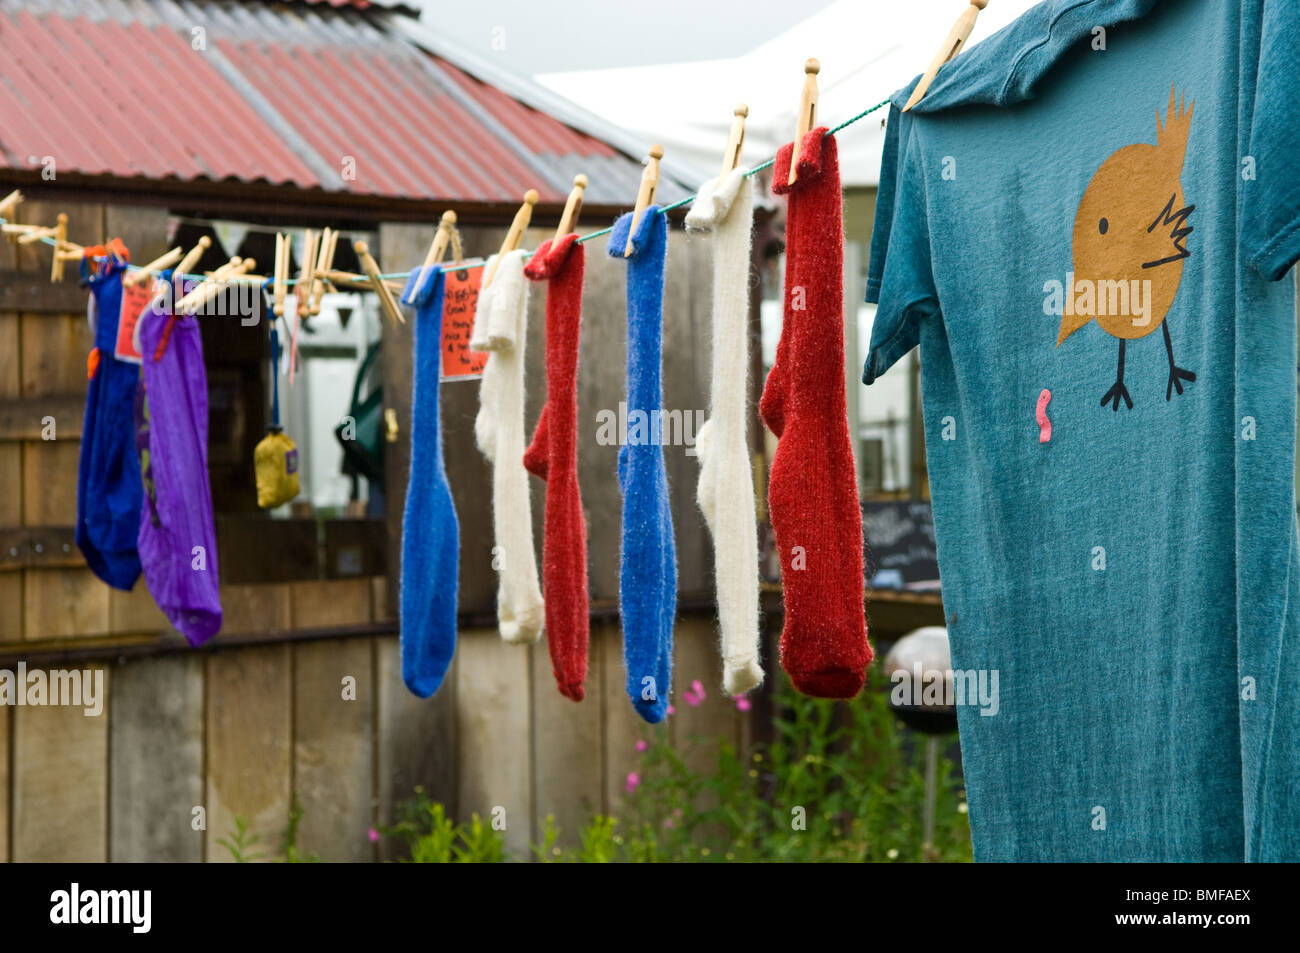 Coloured, colored socks and cartooned teeshirt pegged to a cloths line - Stock Image